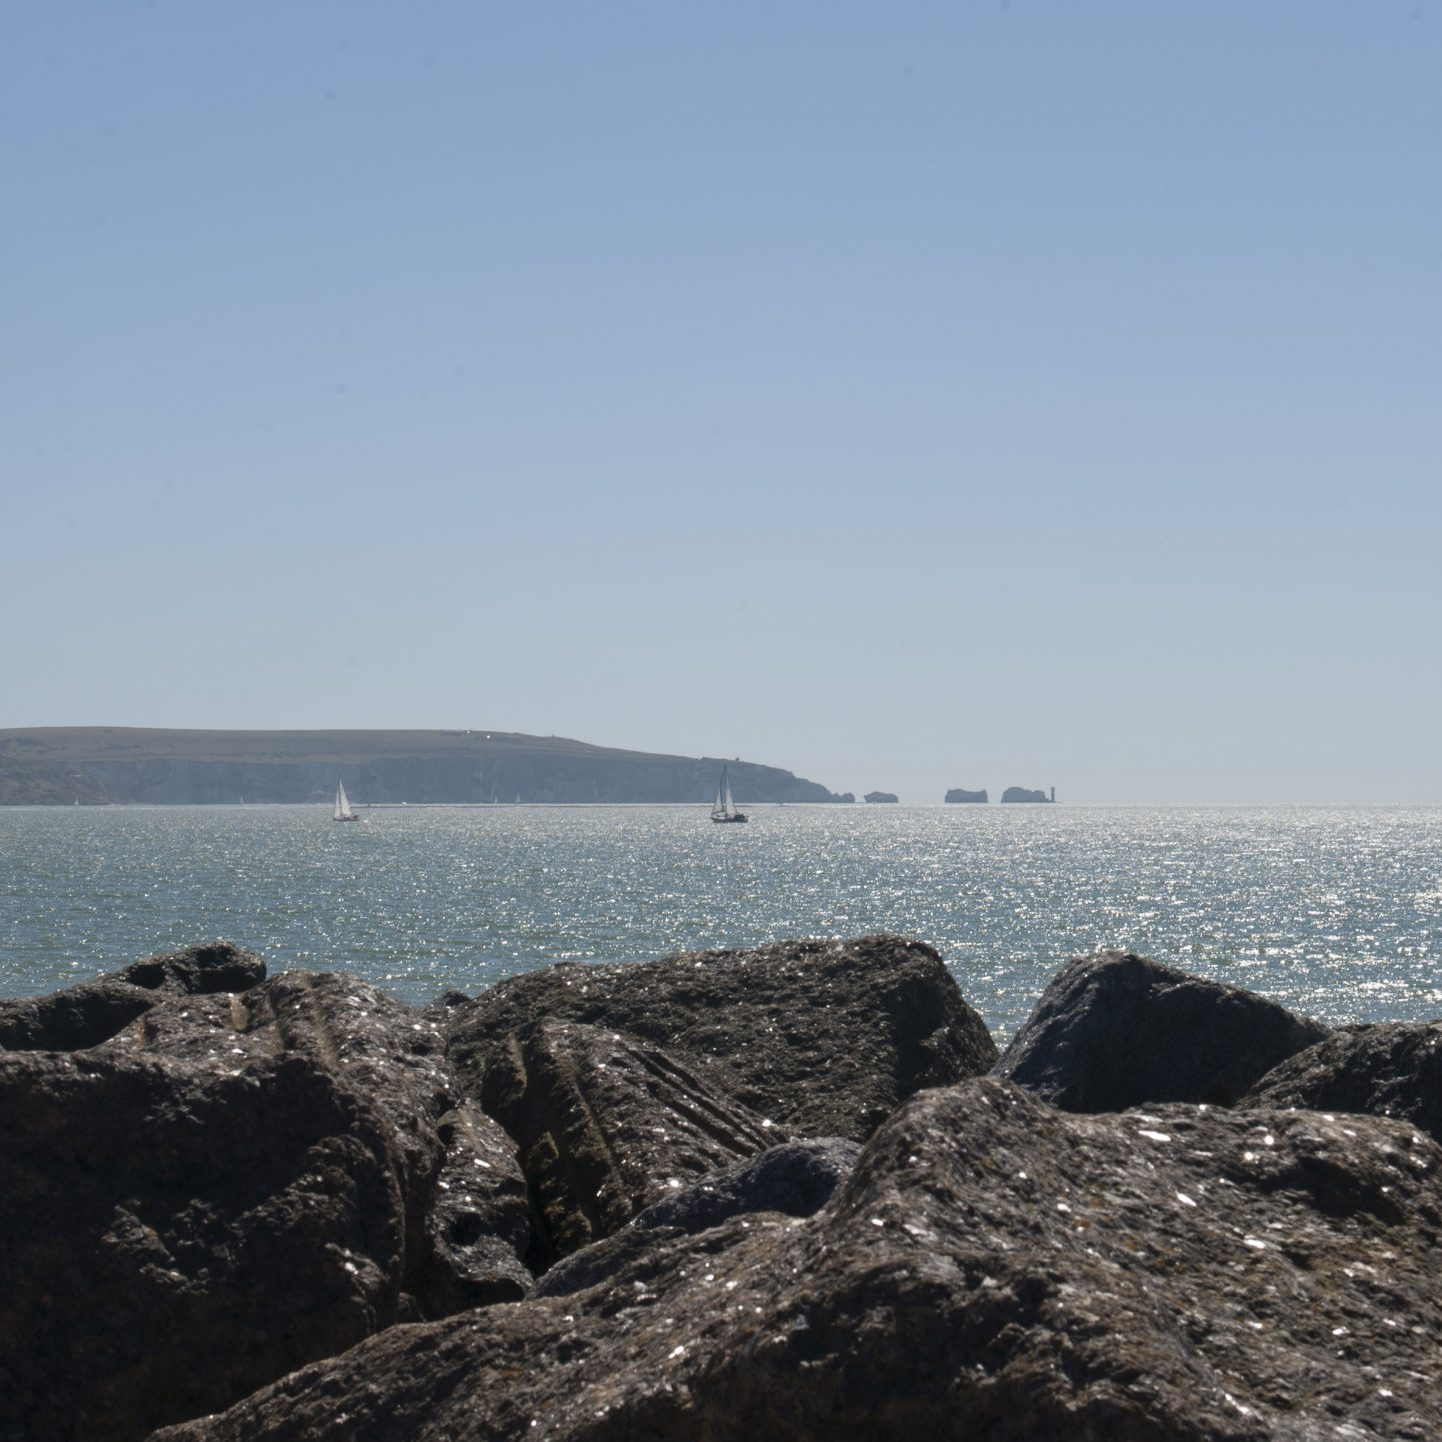 New Forest Bus Route From Milford beach, looking towards Hurst Spit, then the Isle of Wight, showing the Needles